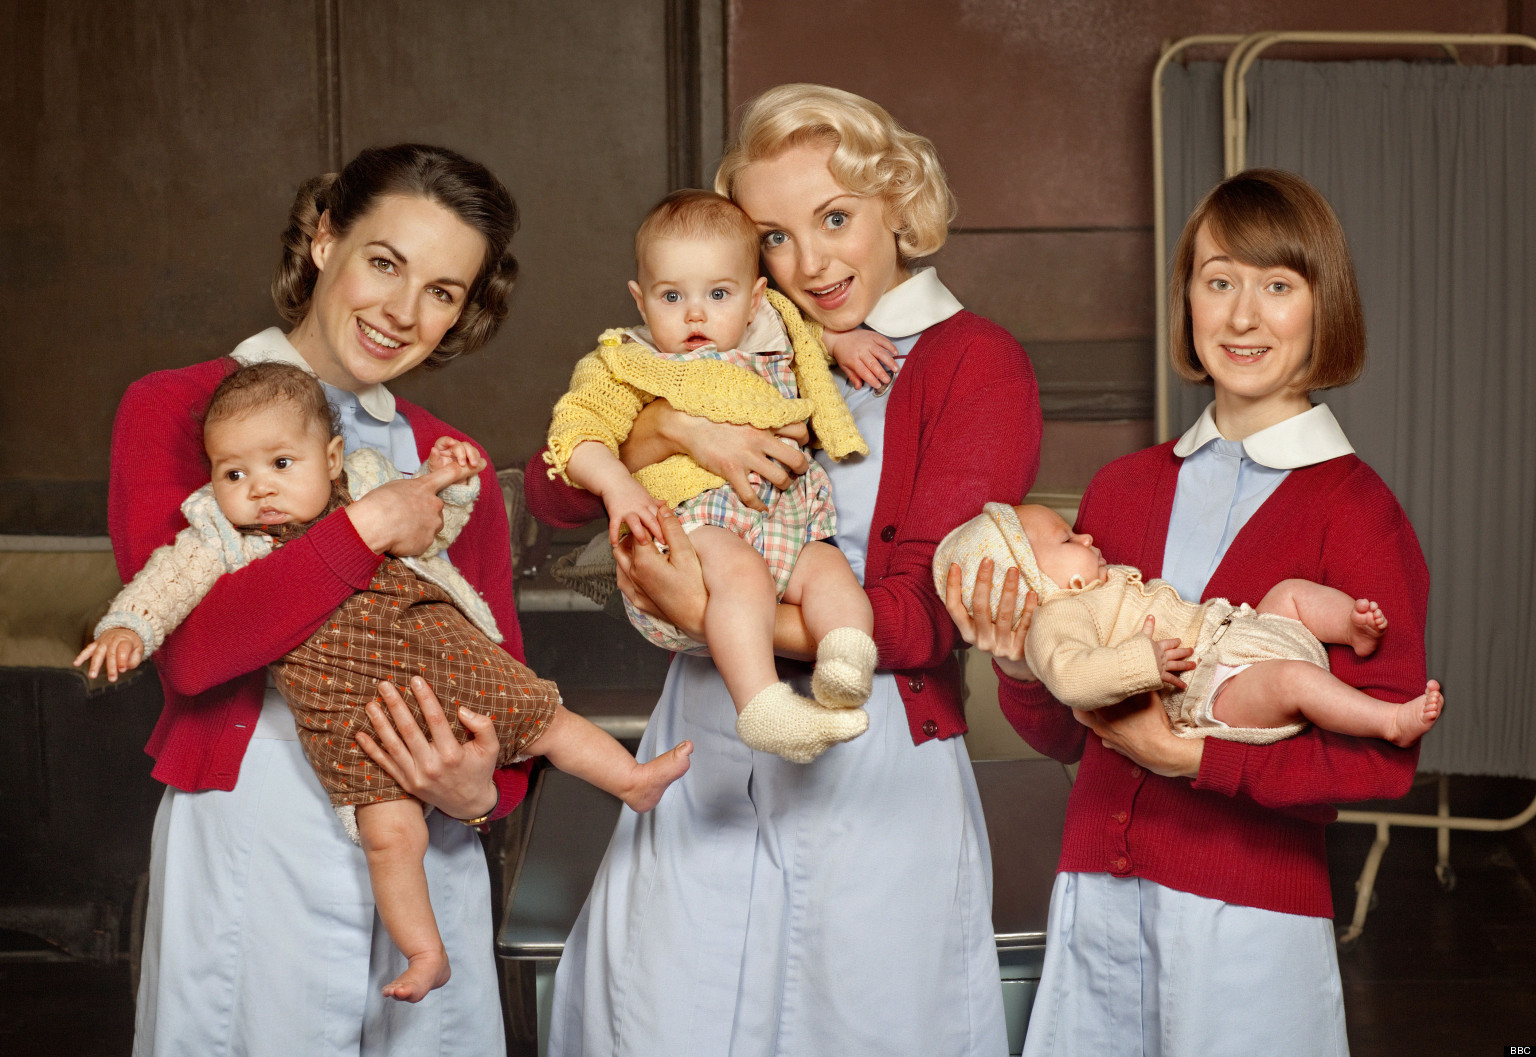 Résultat d'images pour call the midwife with baby